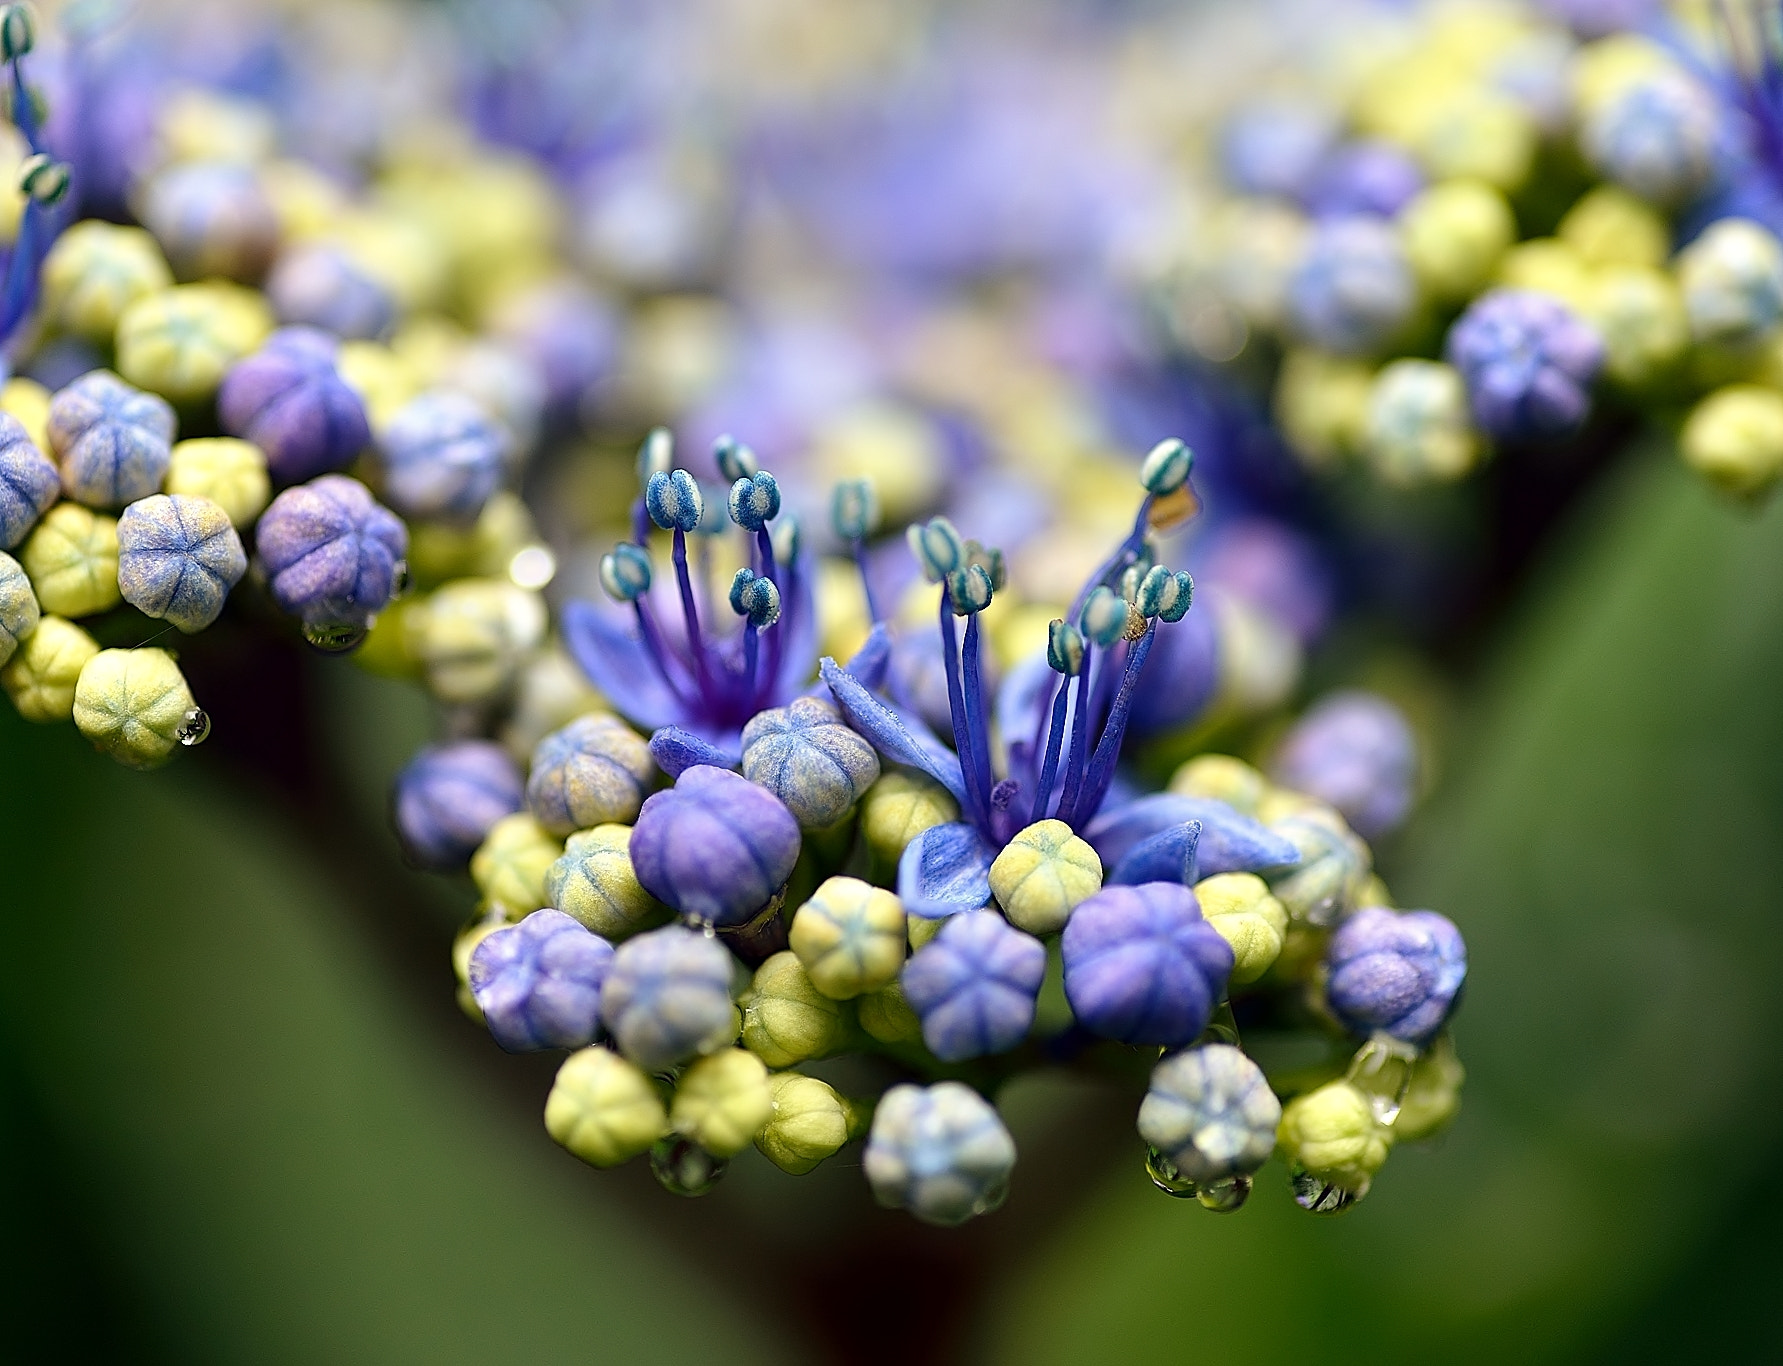 Photograph Tears of the hydrangea    by yoshi 馬場 on 500px